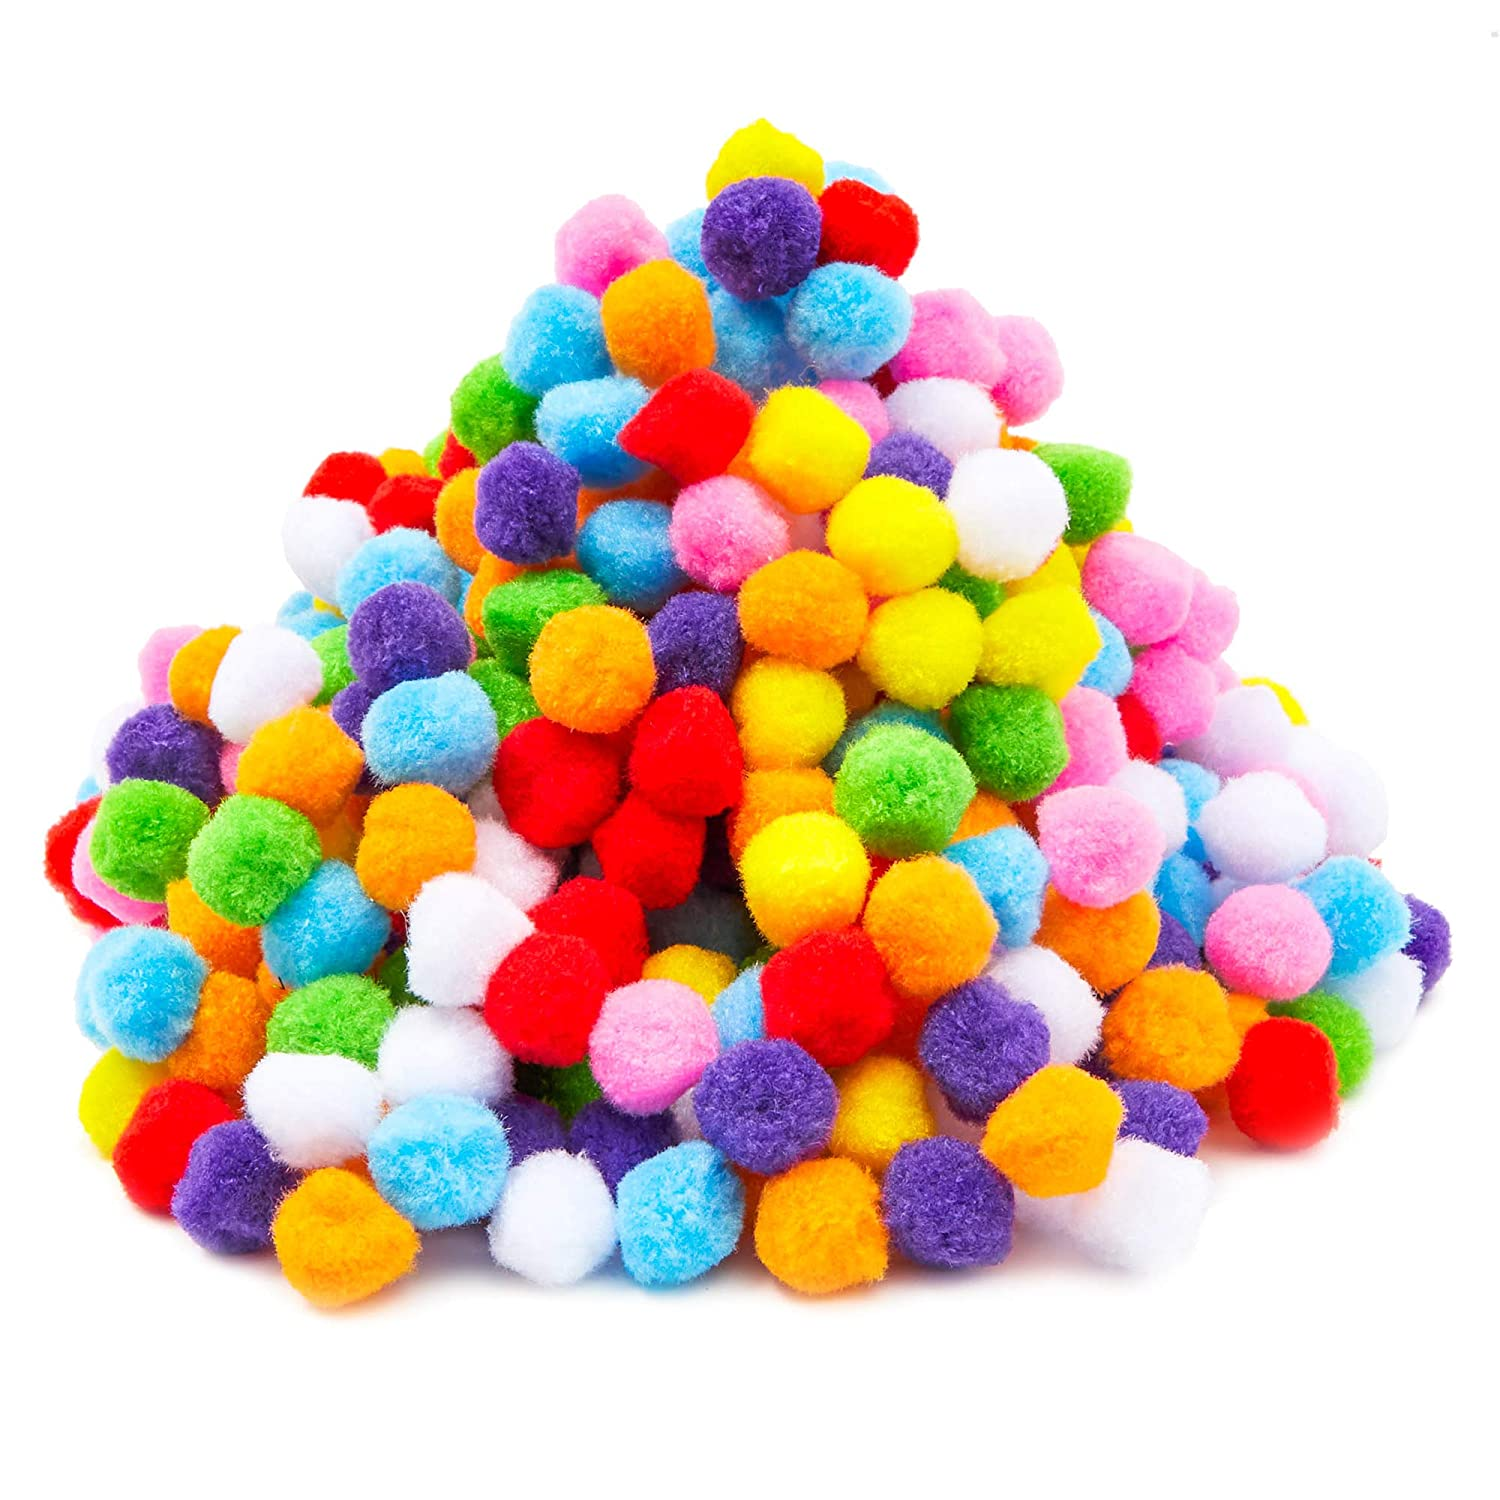 Assorted Colors Kids Art Supplies 0.86 Inches Creative Decorations Pom Poms 500-Count Fluffy Craft Pom Poms for Hobby Supplies DIY Craft Projects